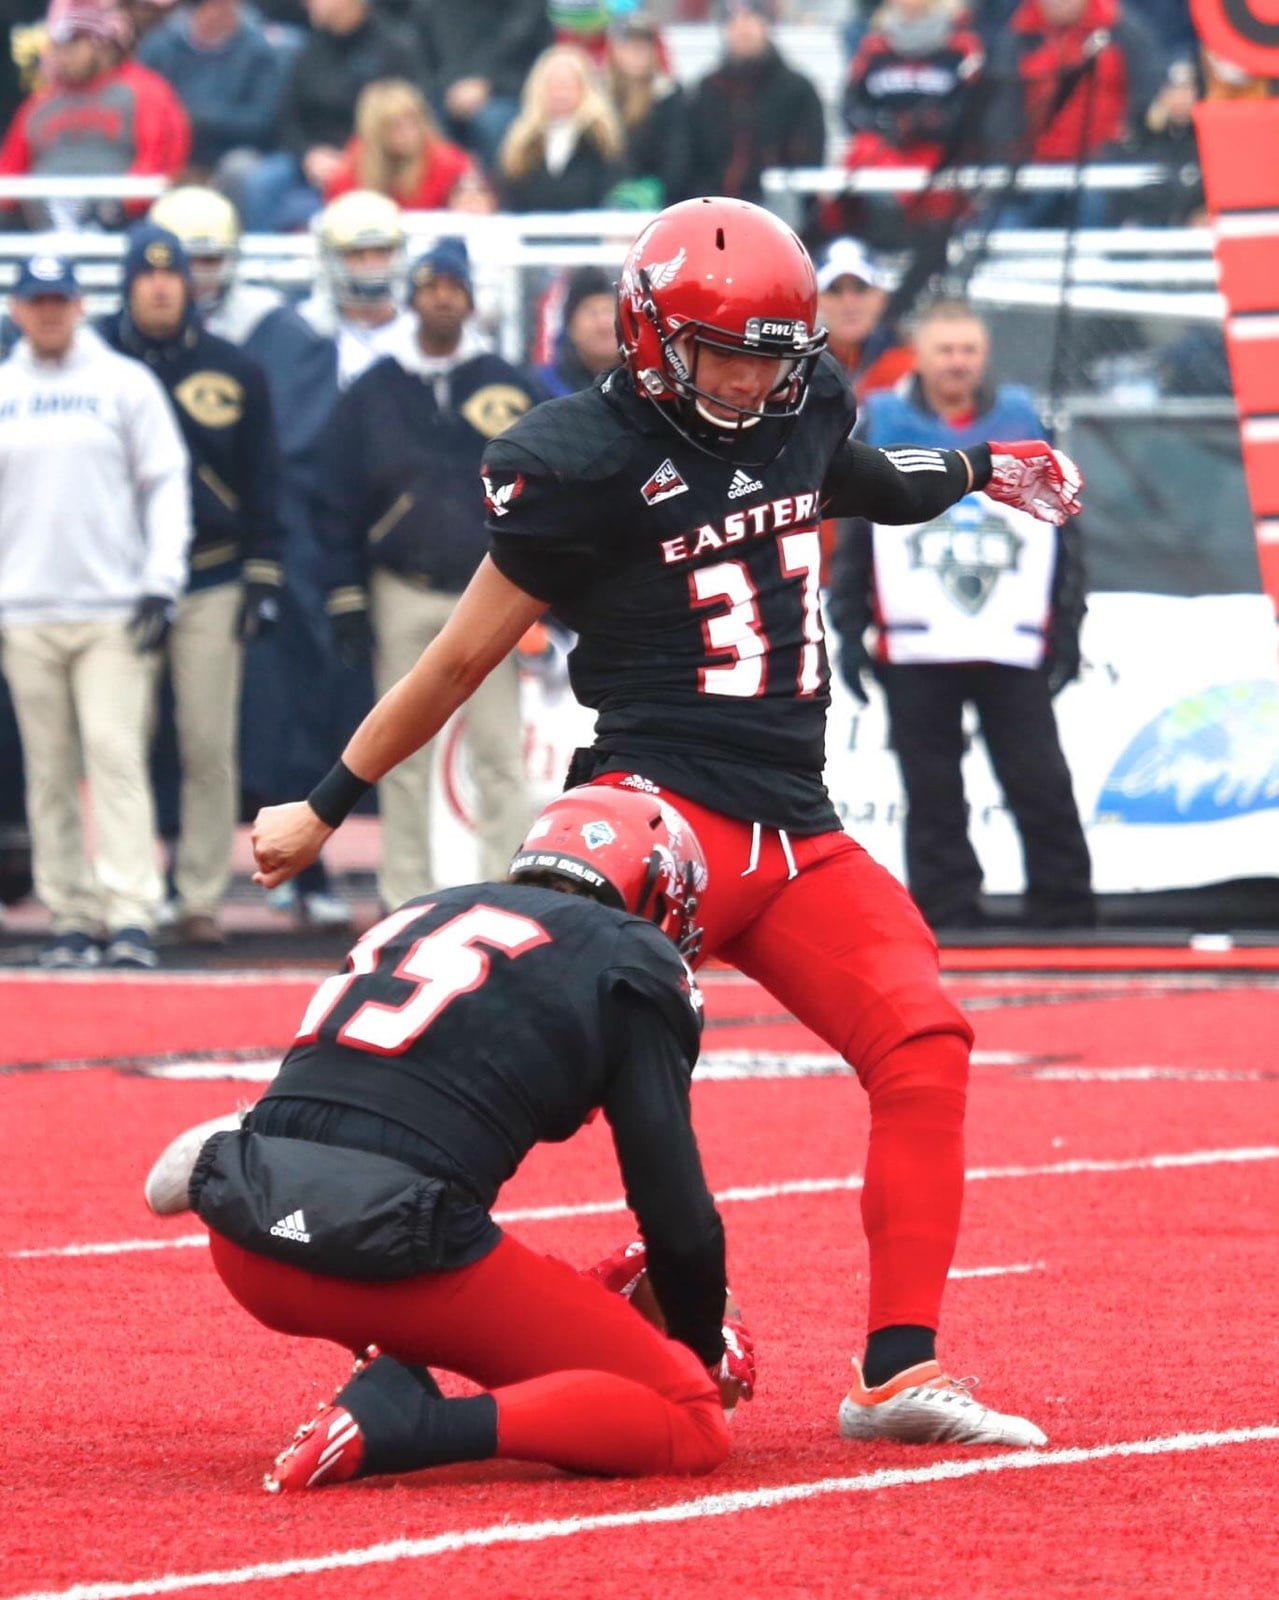 Former Camas kicker Roldan Alcobendas, who recently finished his award-winning career at Eastern Washington University, is hoping to get a camp invite to an NFL team. He was not drafted last week, but is hoping to sign with a franchise soon. Photo courtesy Eastern Washington University athletics.